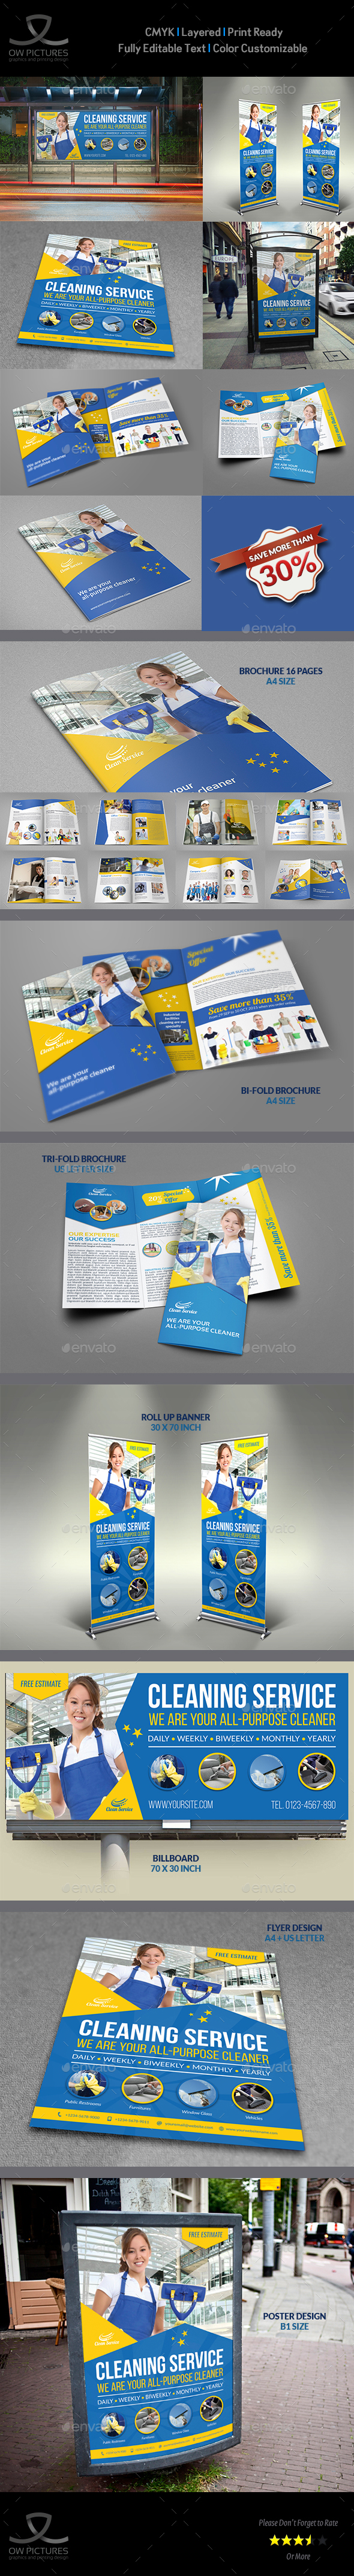 Cleaning Services Advertising Bundle Vol.4 - Miscellaneous Print Templates